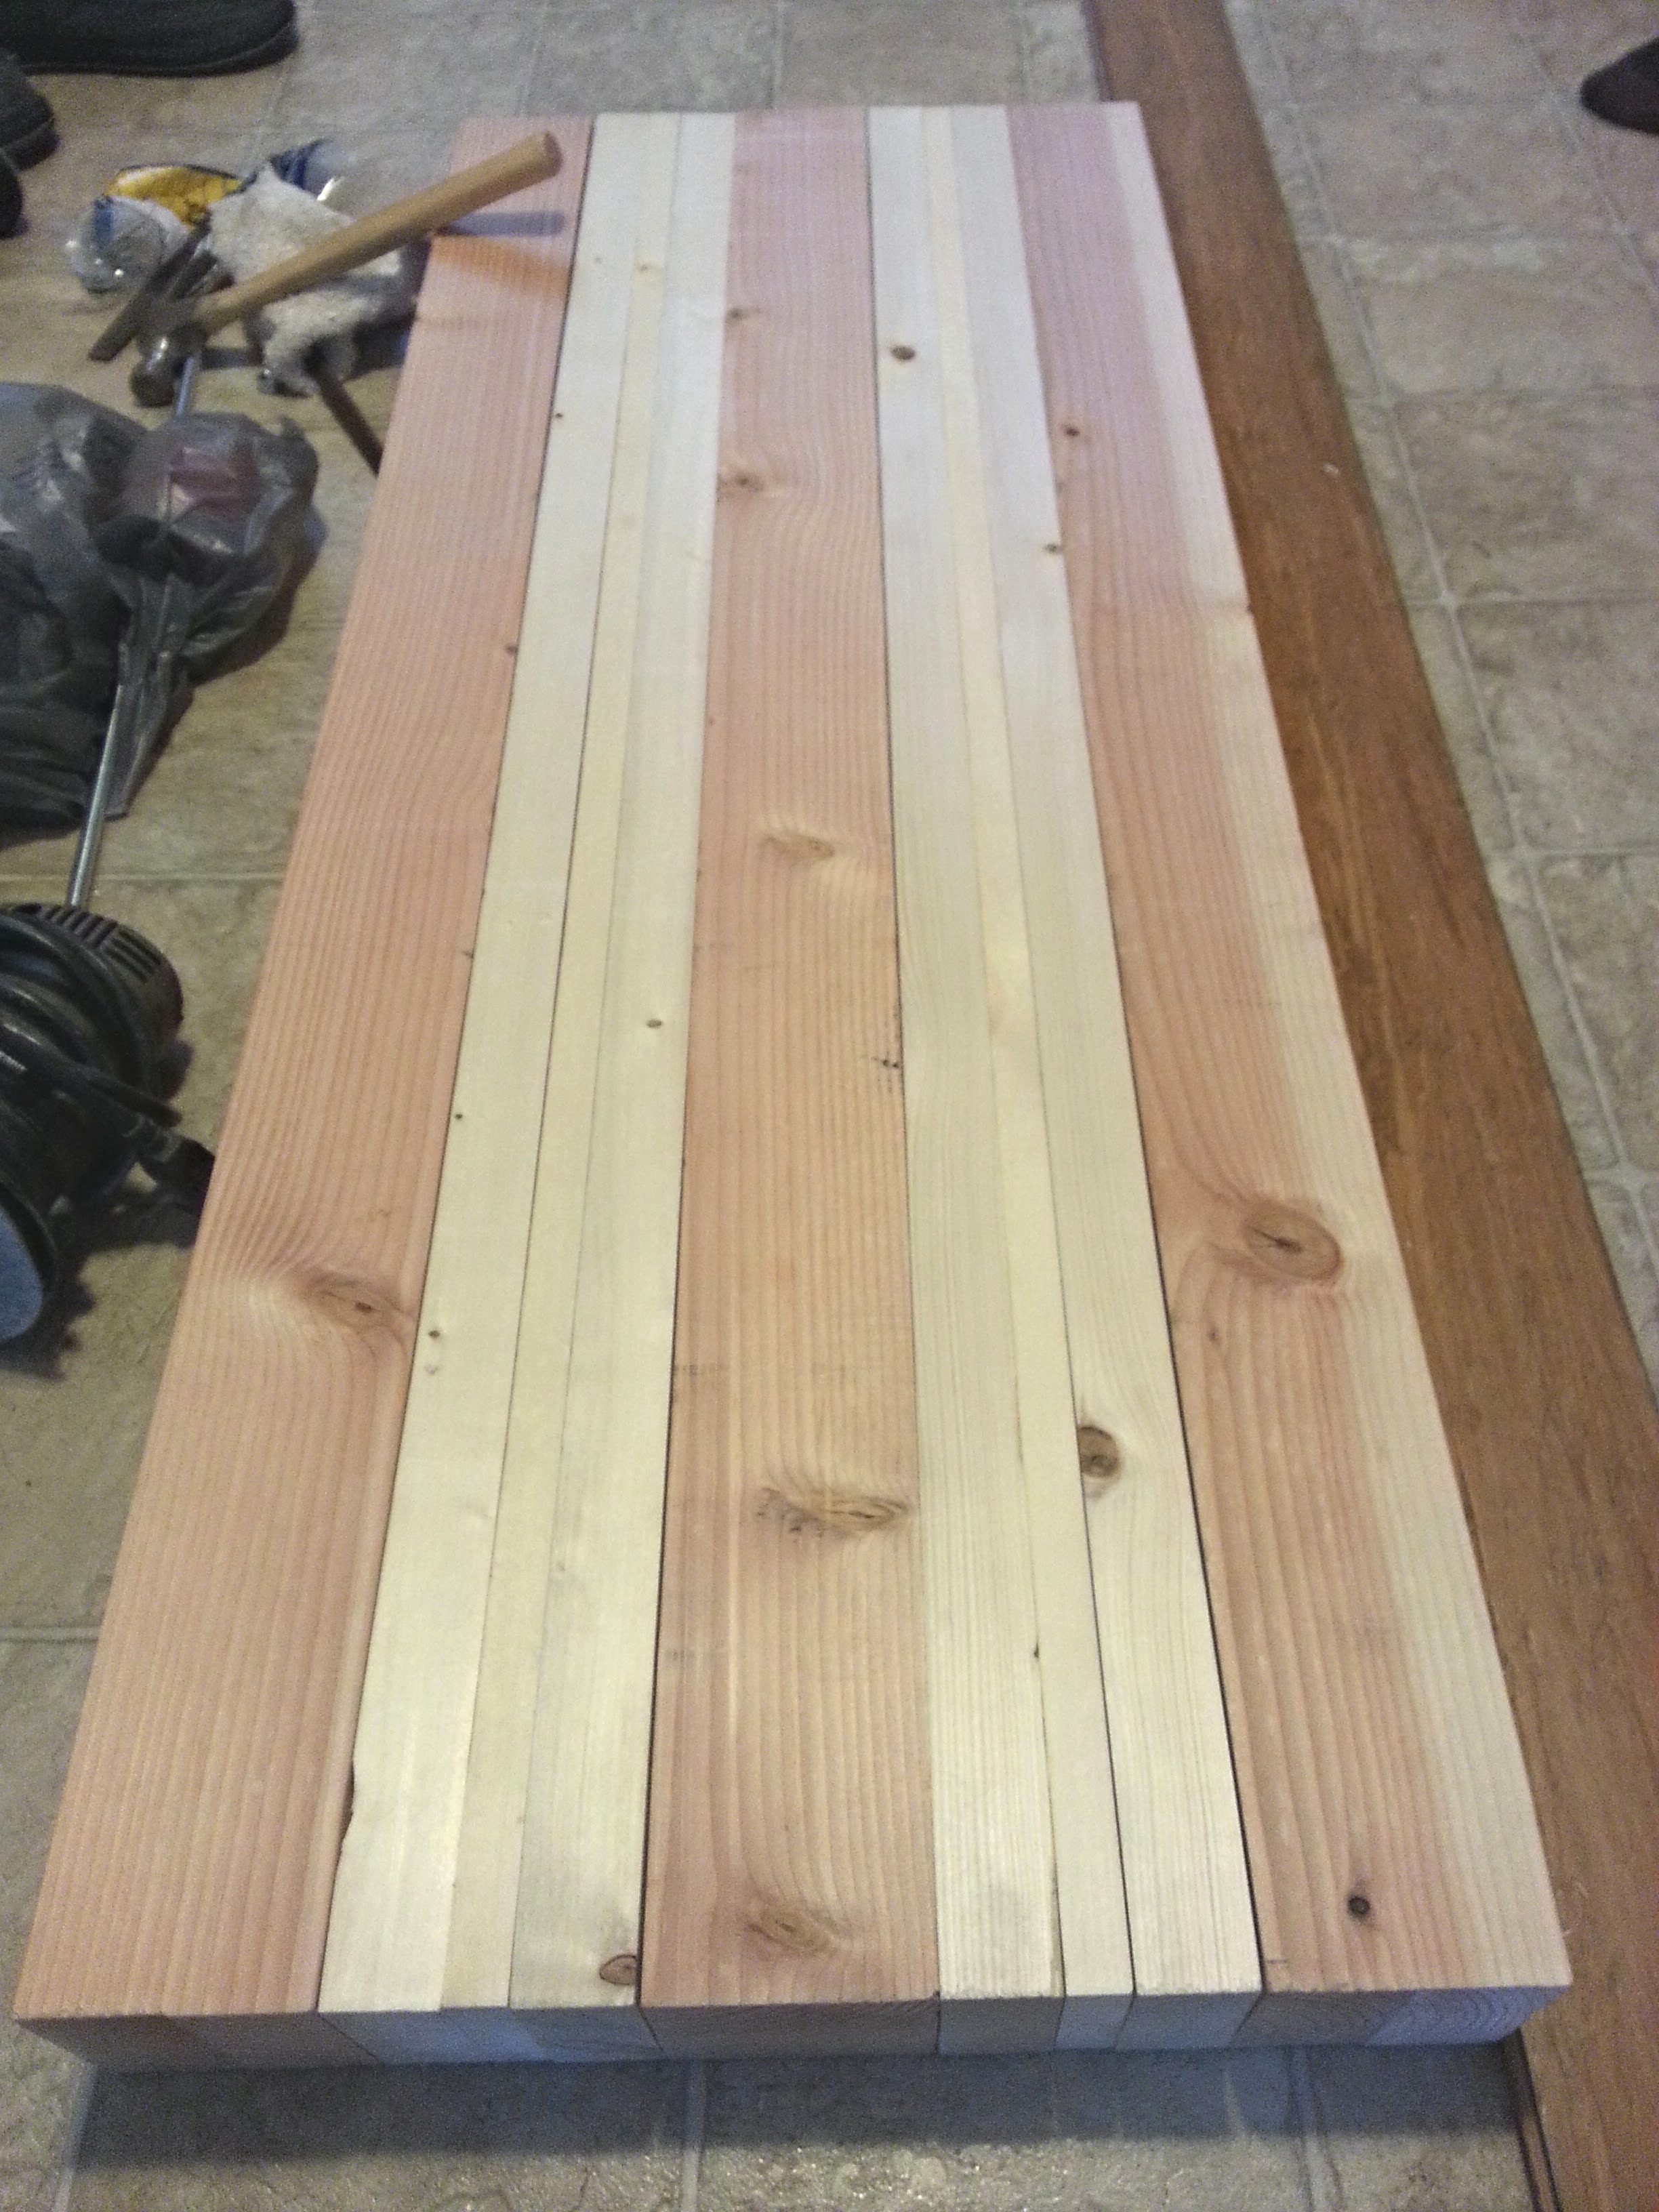 Laminate pattern of the boards